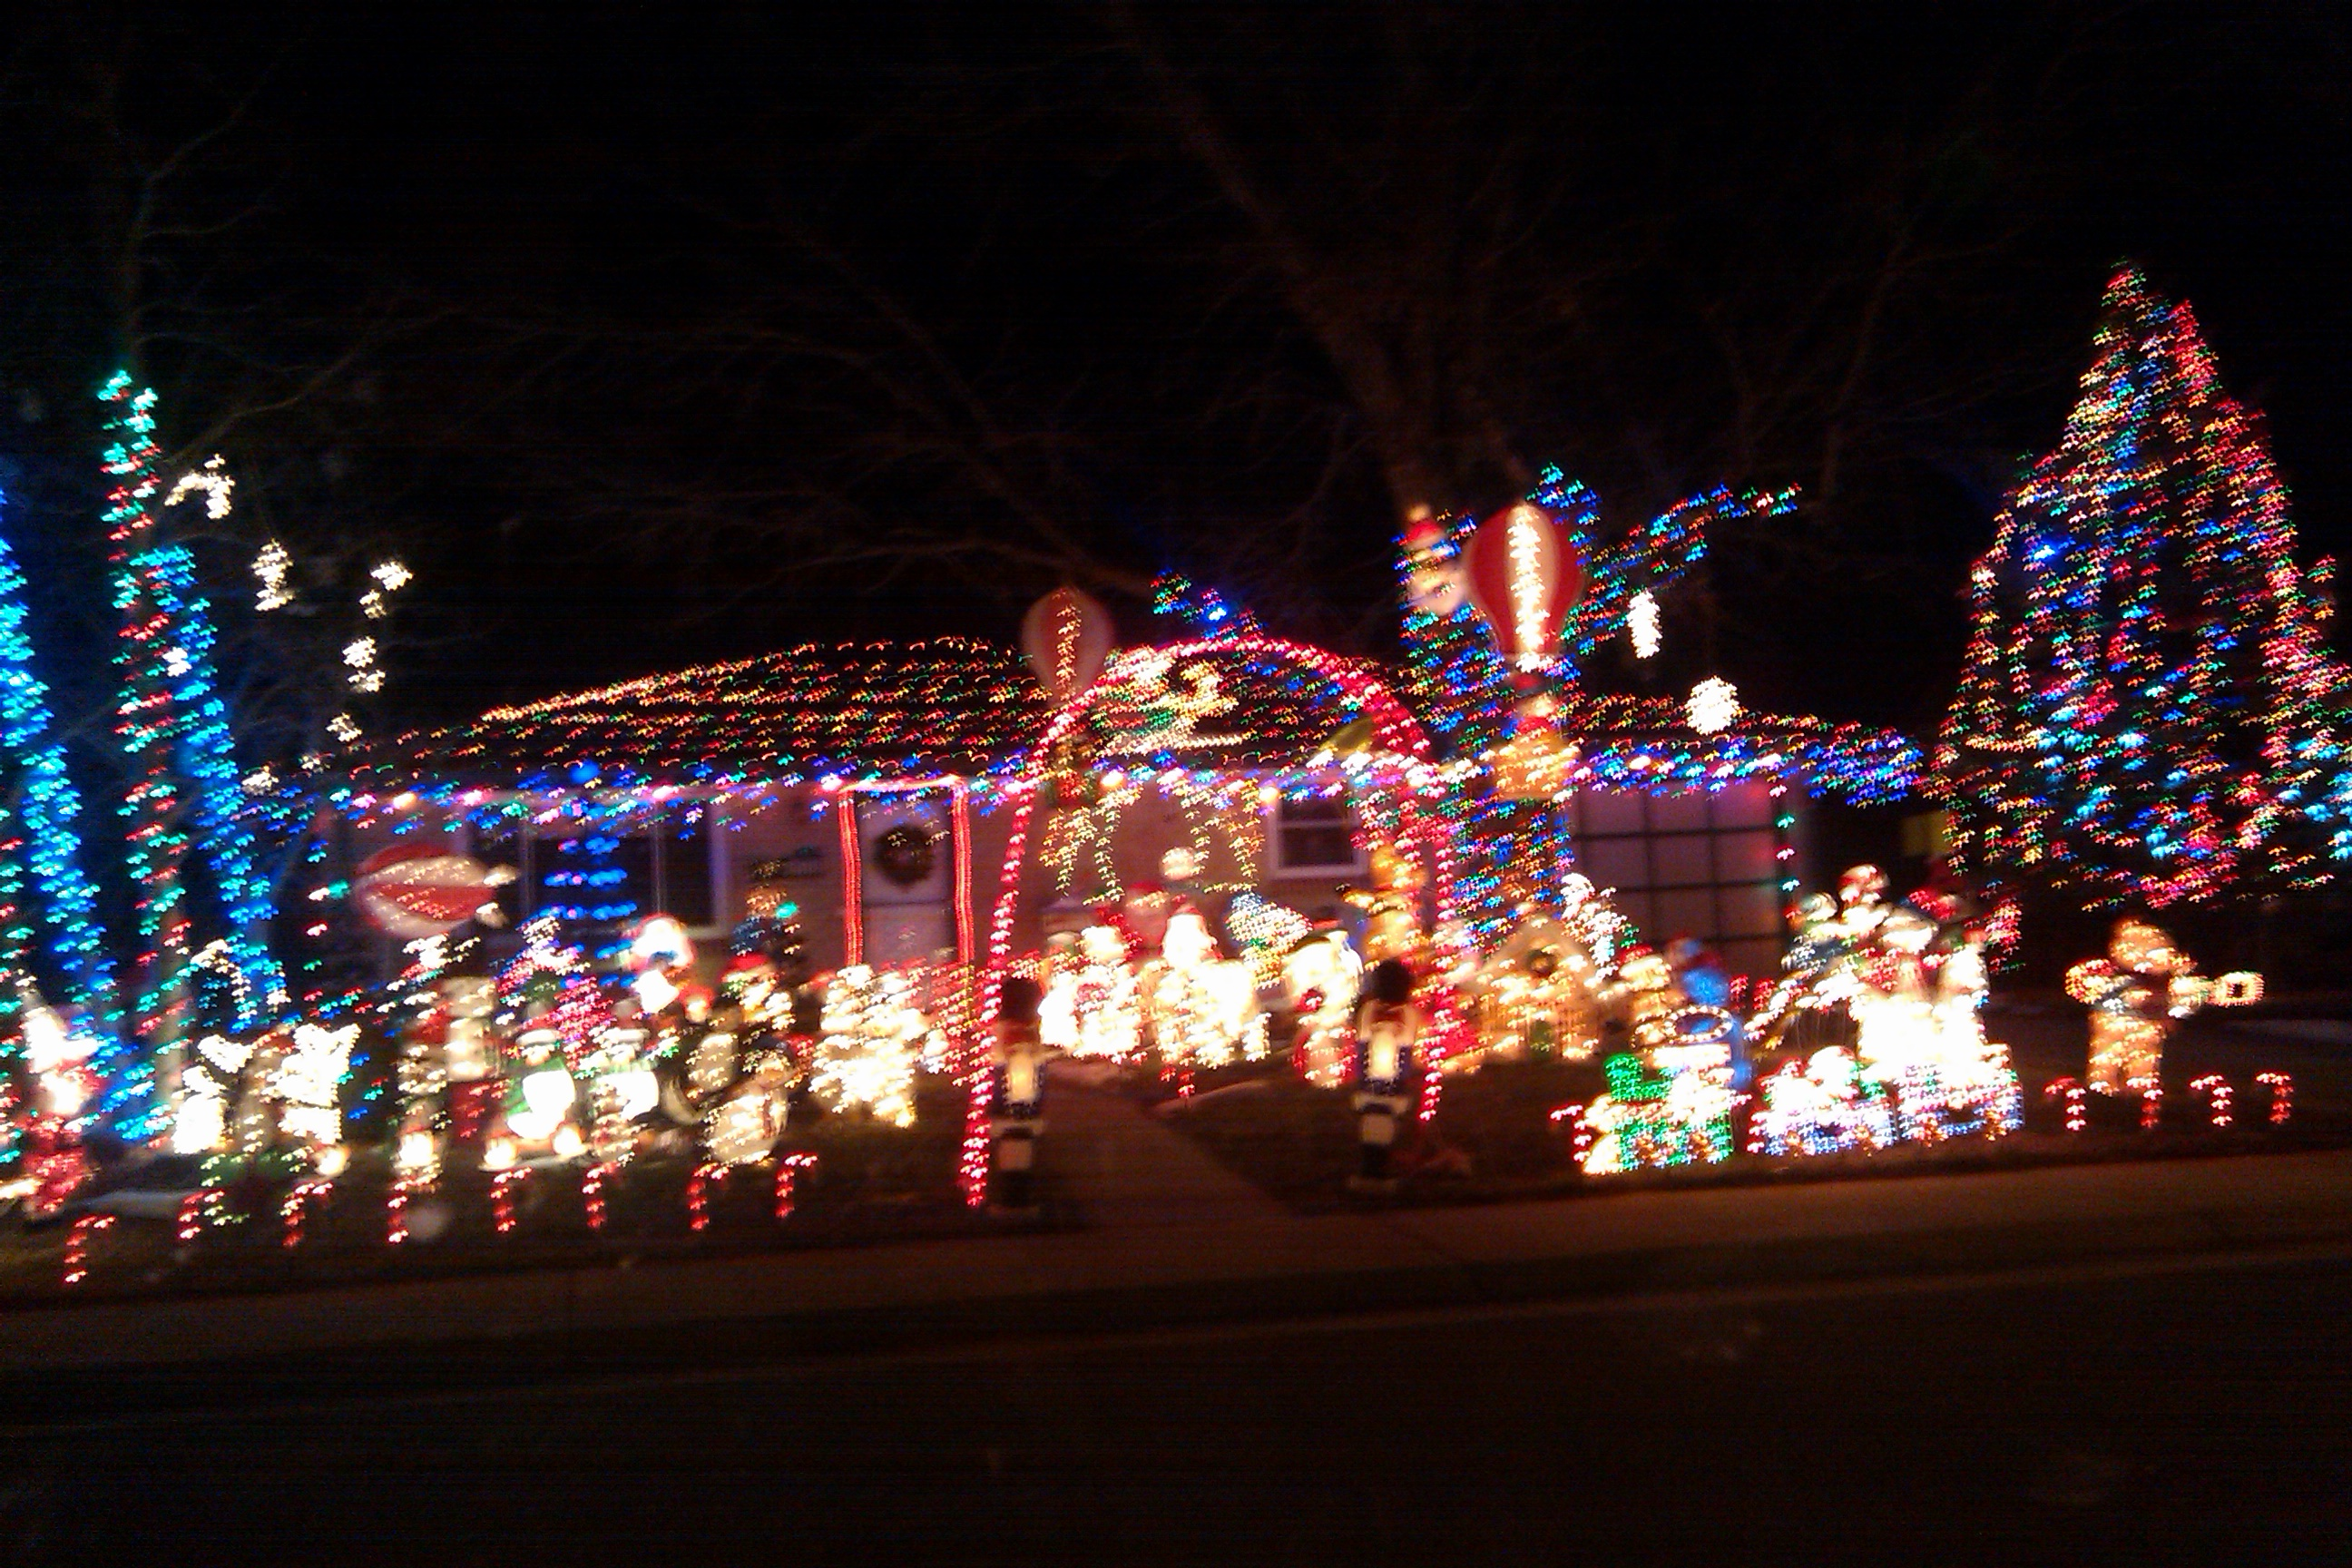 Why do we decorate our houses at christmas - It Was Seriously Impressive How Much They Managed To Fit In Their Yard When I See Houses Decorated Like This I Have 2 Thoughts Where Do They Store All